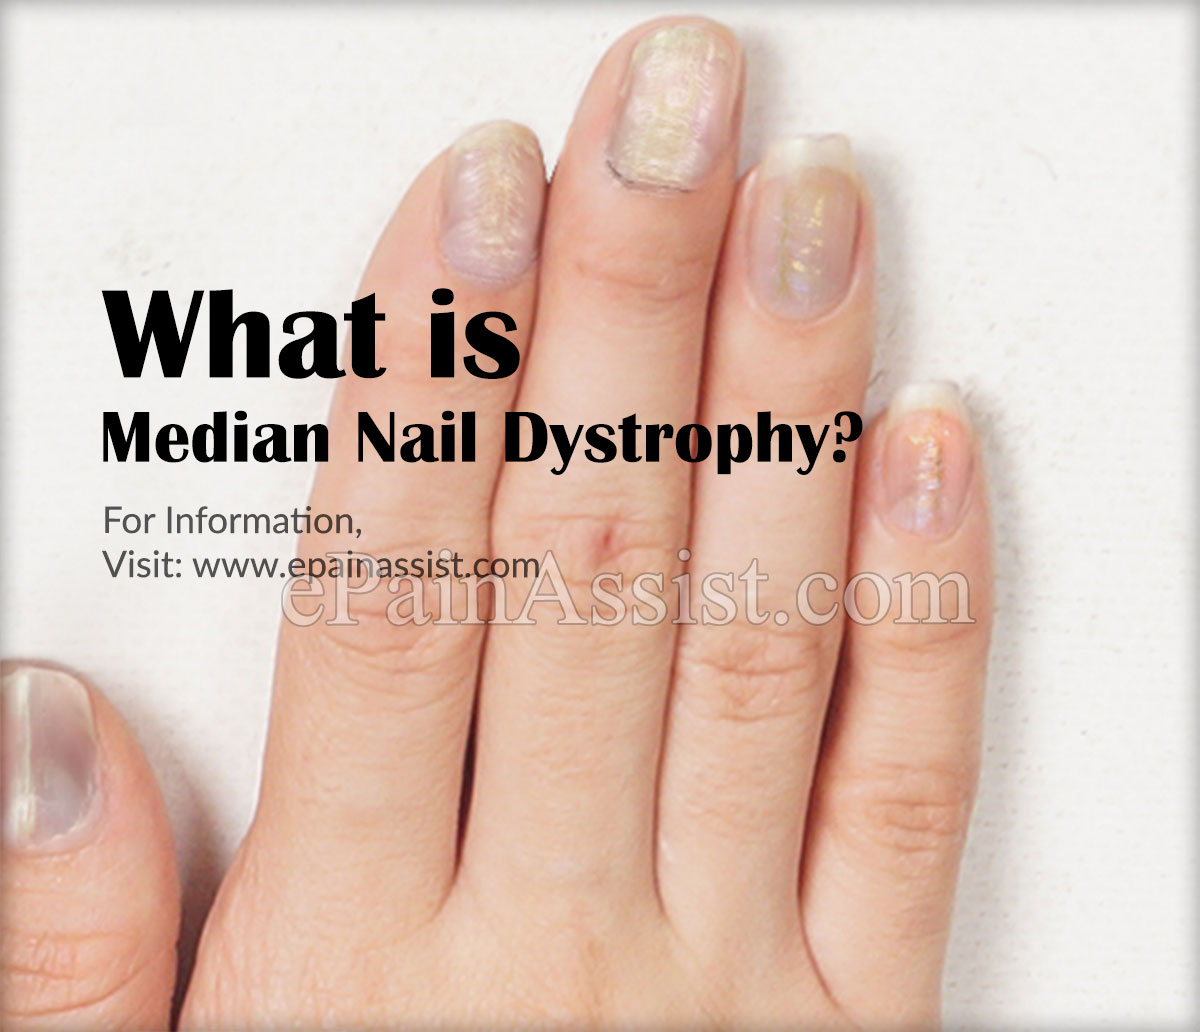 What is Median Nail Dystrophy?